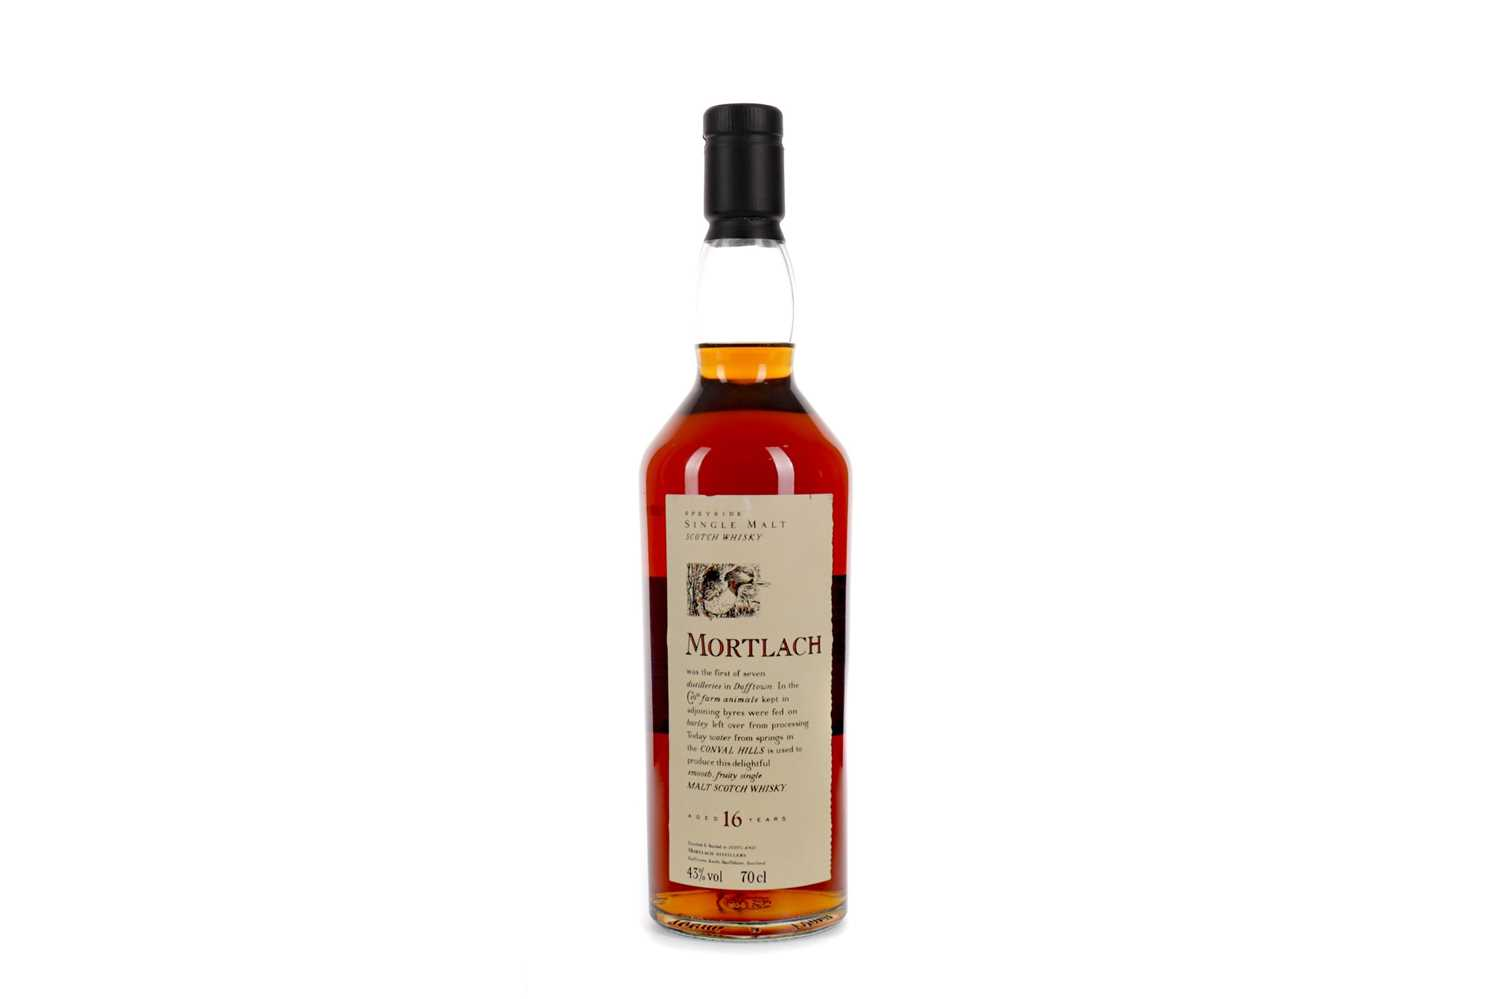 Lot 5 - MORTLACH AGED 16 YEARS FLORA & FAUNA